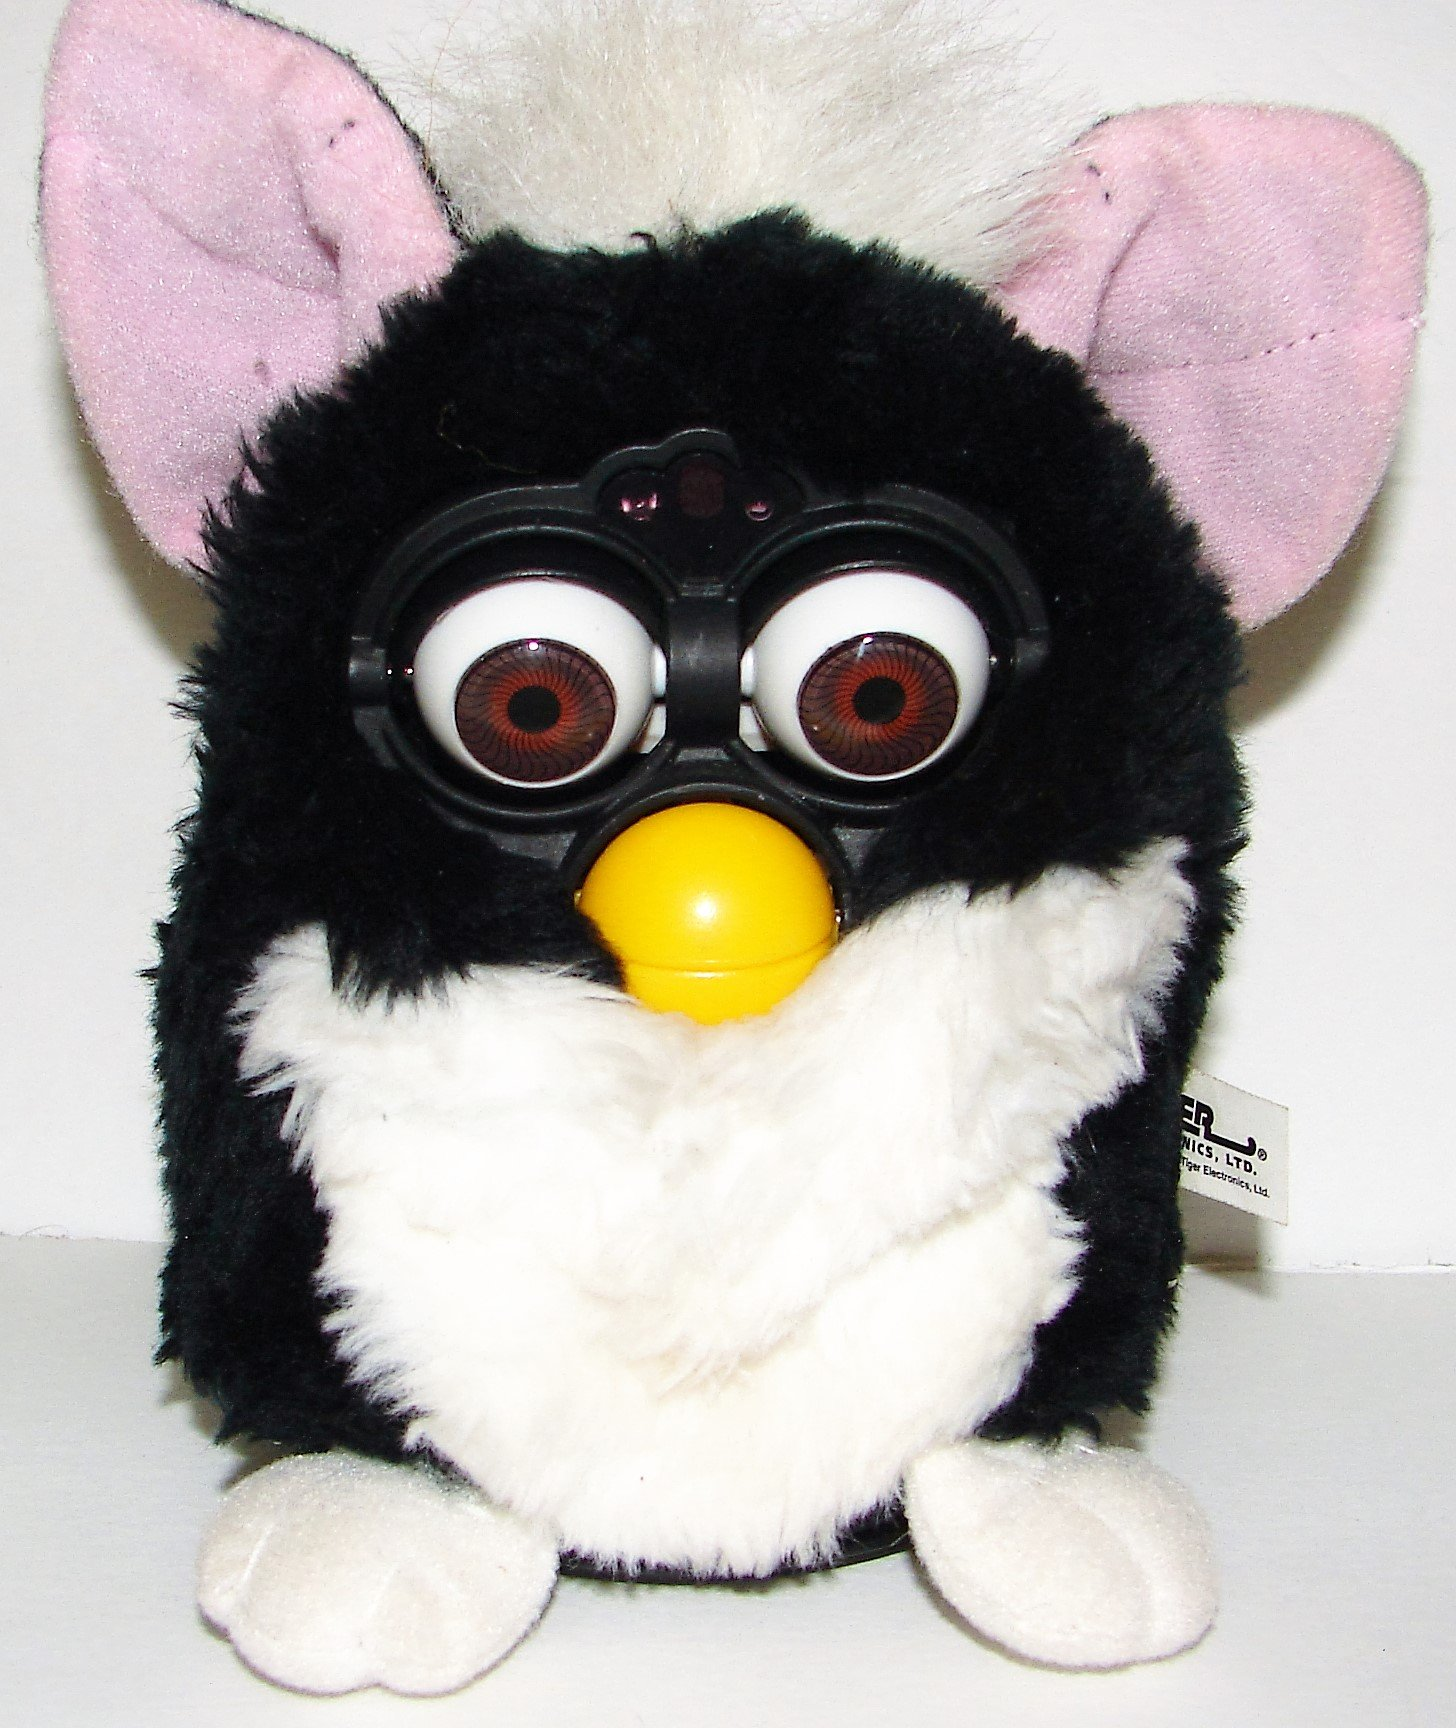 1998 Furby Model 70-800 - Black with White Tummy and Pink Ears by Tiger Electronics